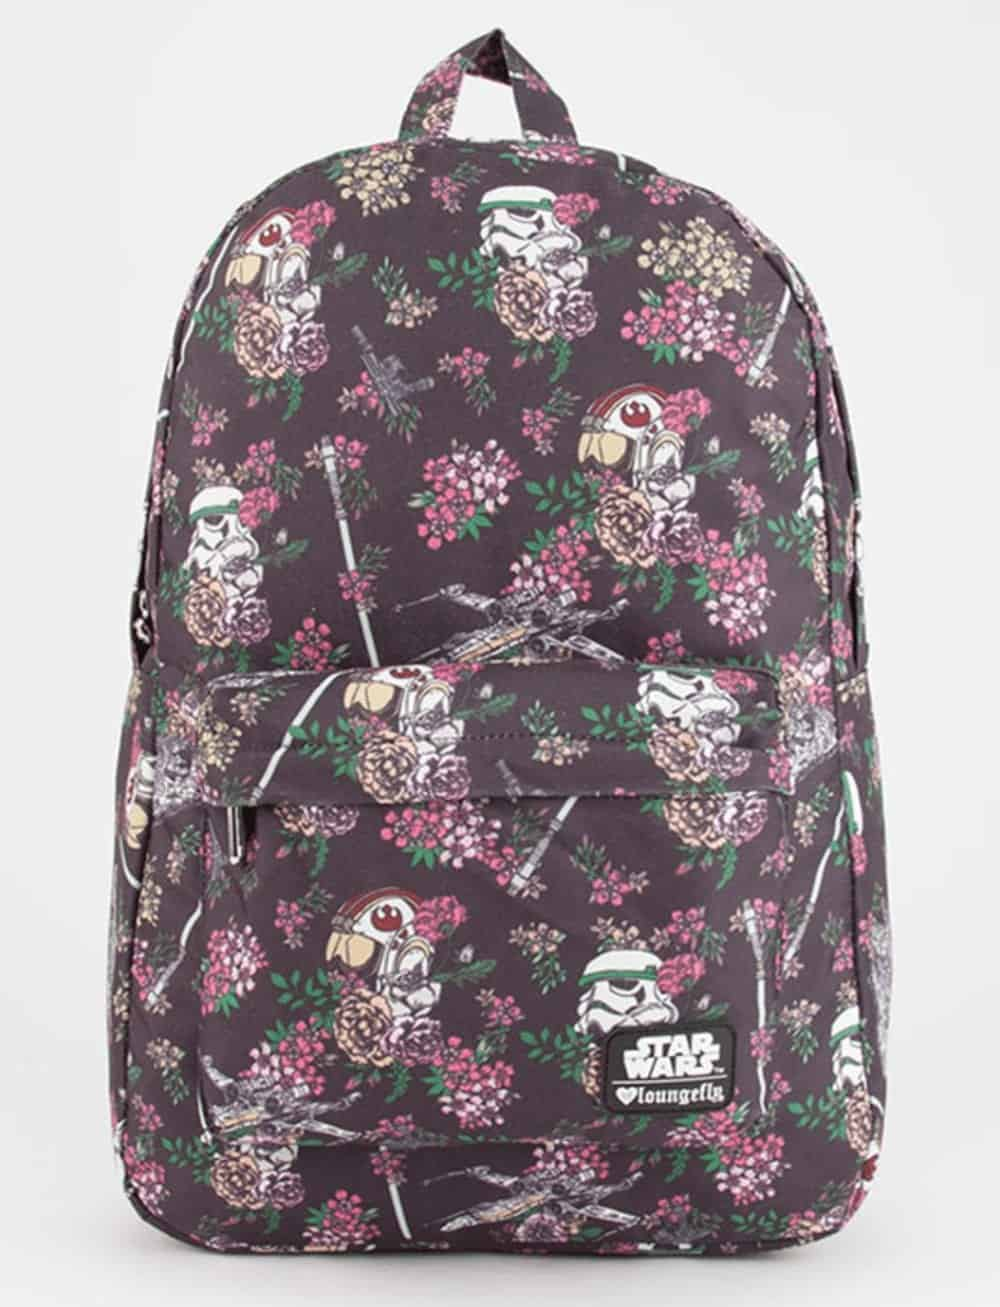 c9765802ad98 7 Cute Backpacks That Are Perfect For Heading Back To School